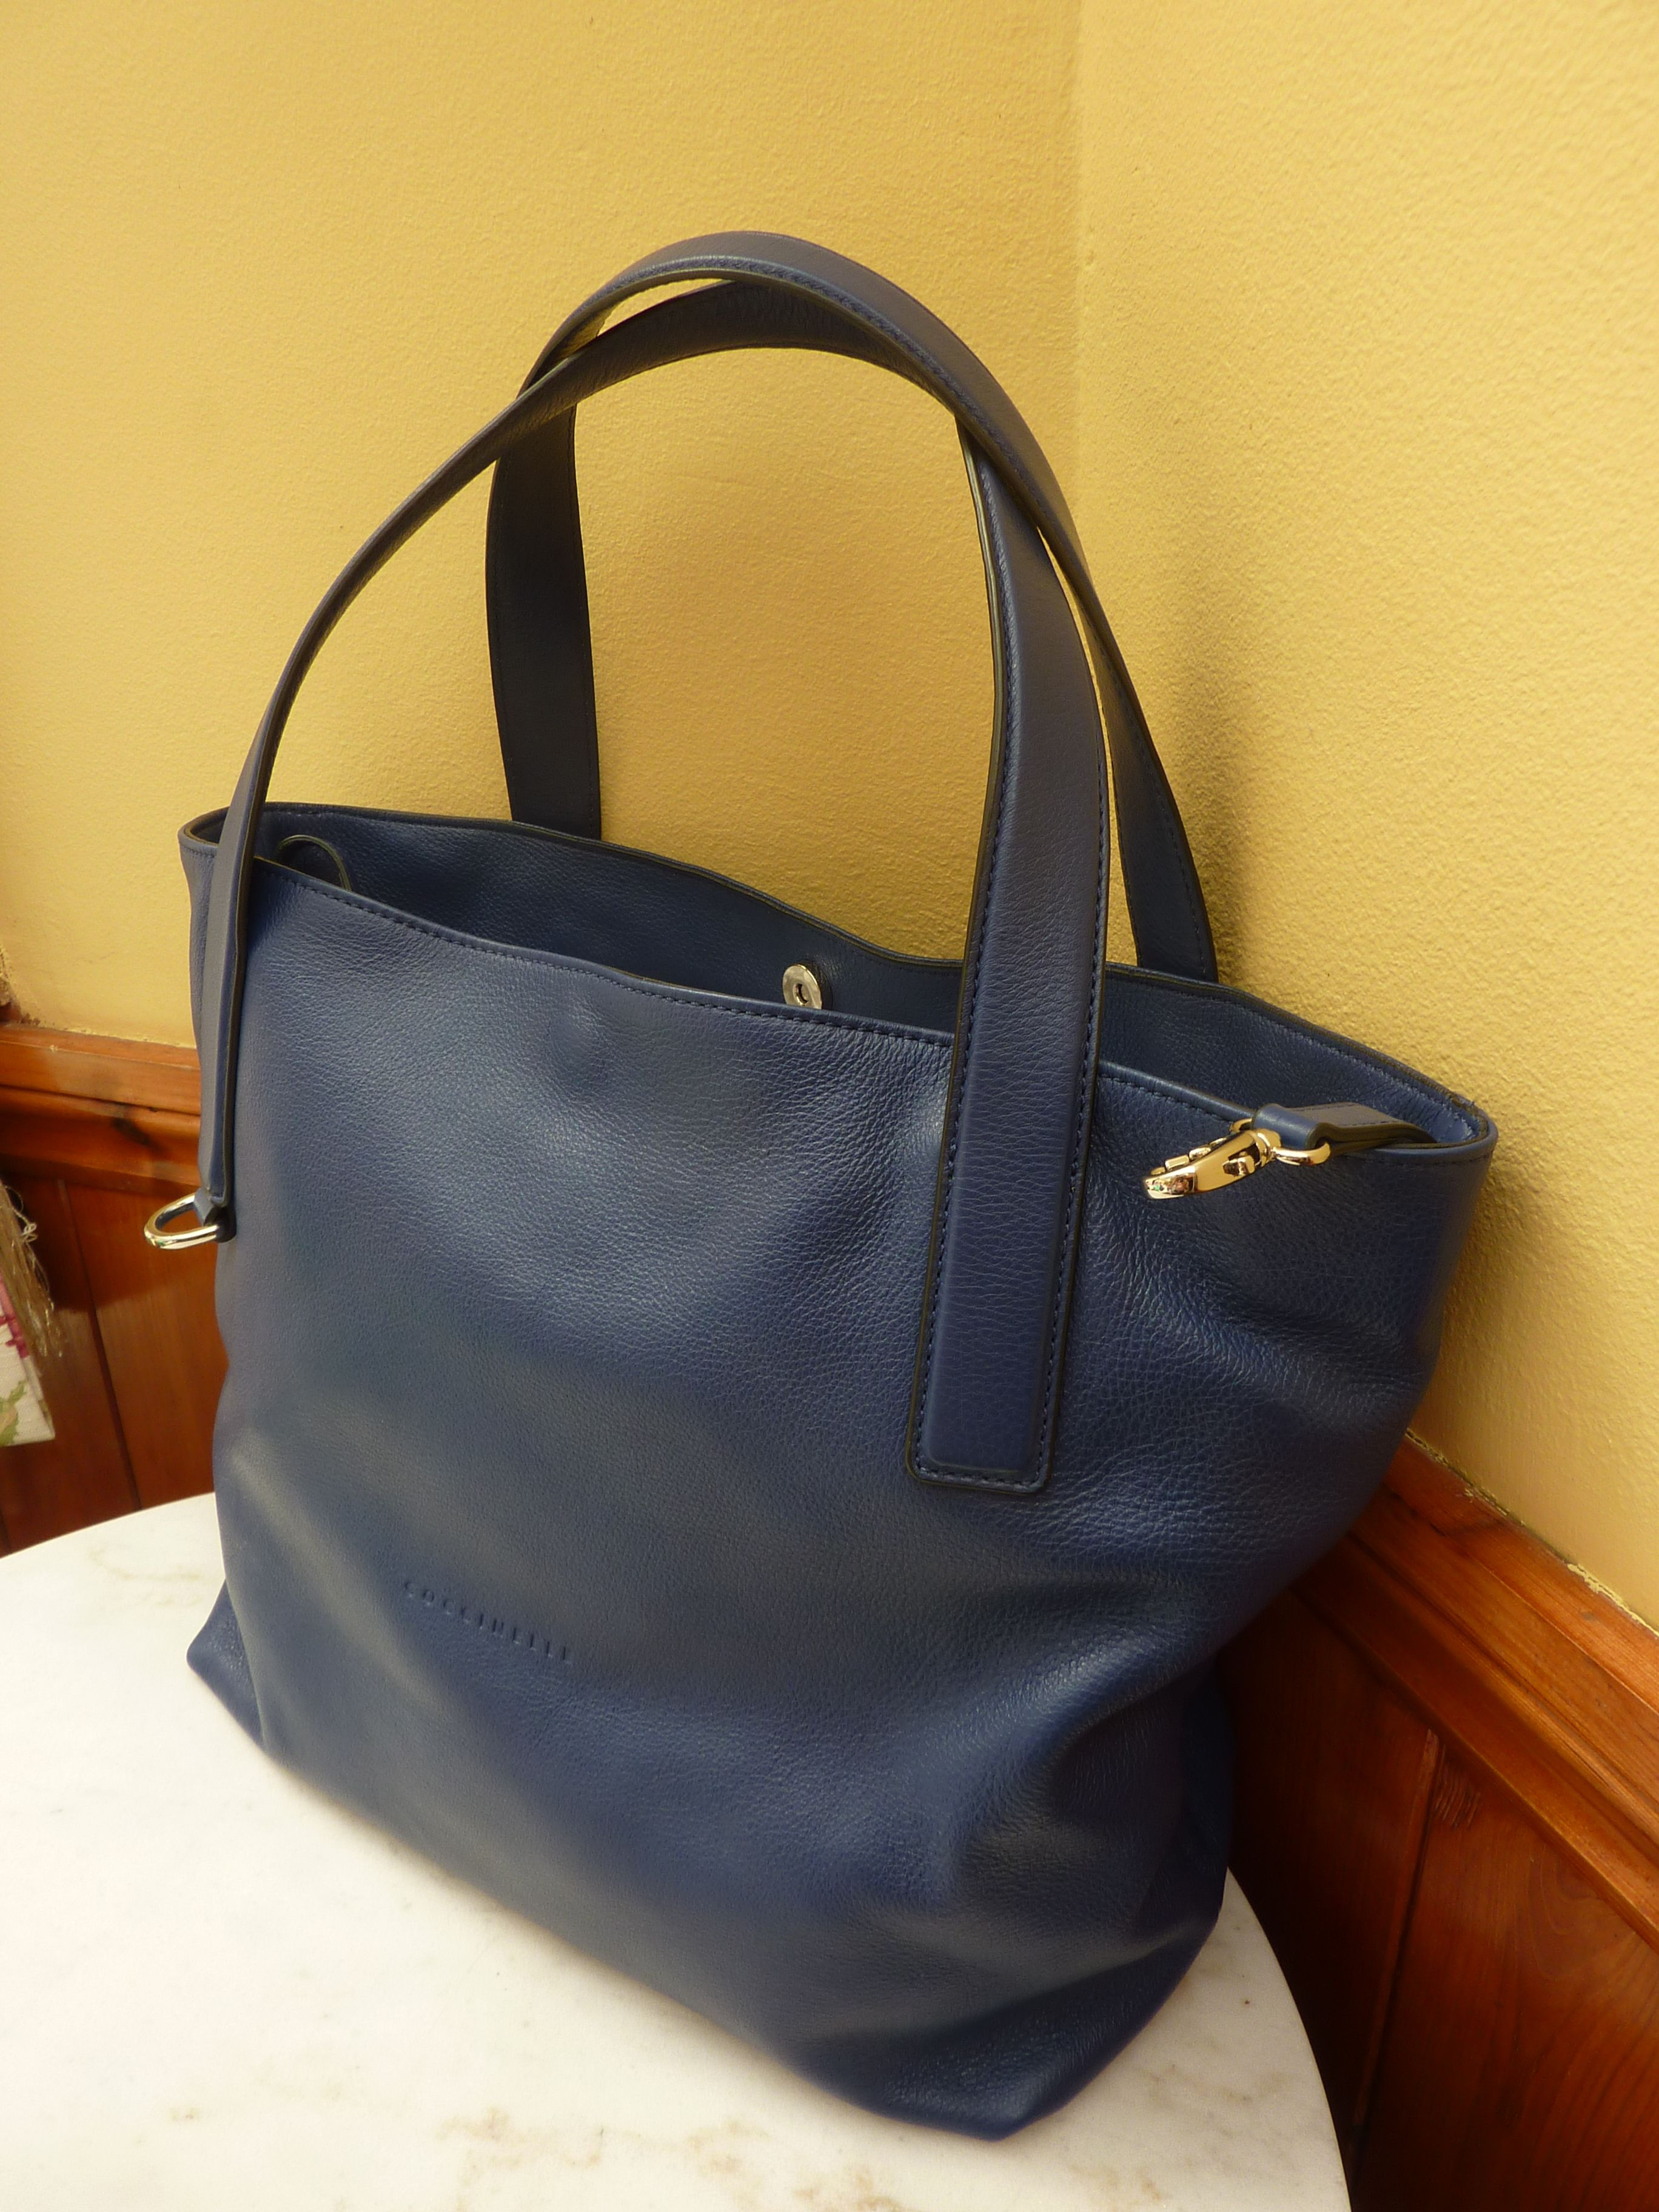 Genuine Coccinelle Soft Leather Dark Blue Bag 89 99 Including Free Shipping To The Uk